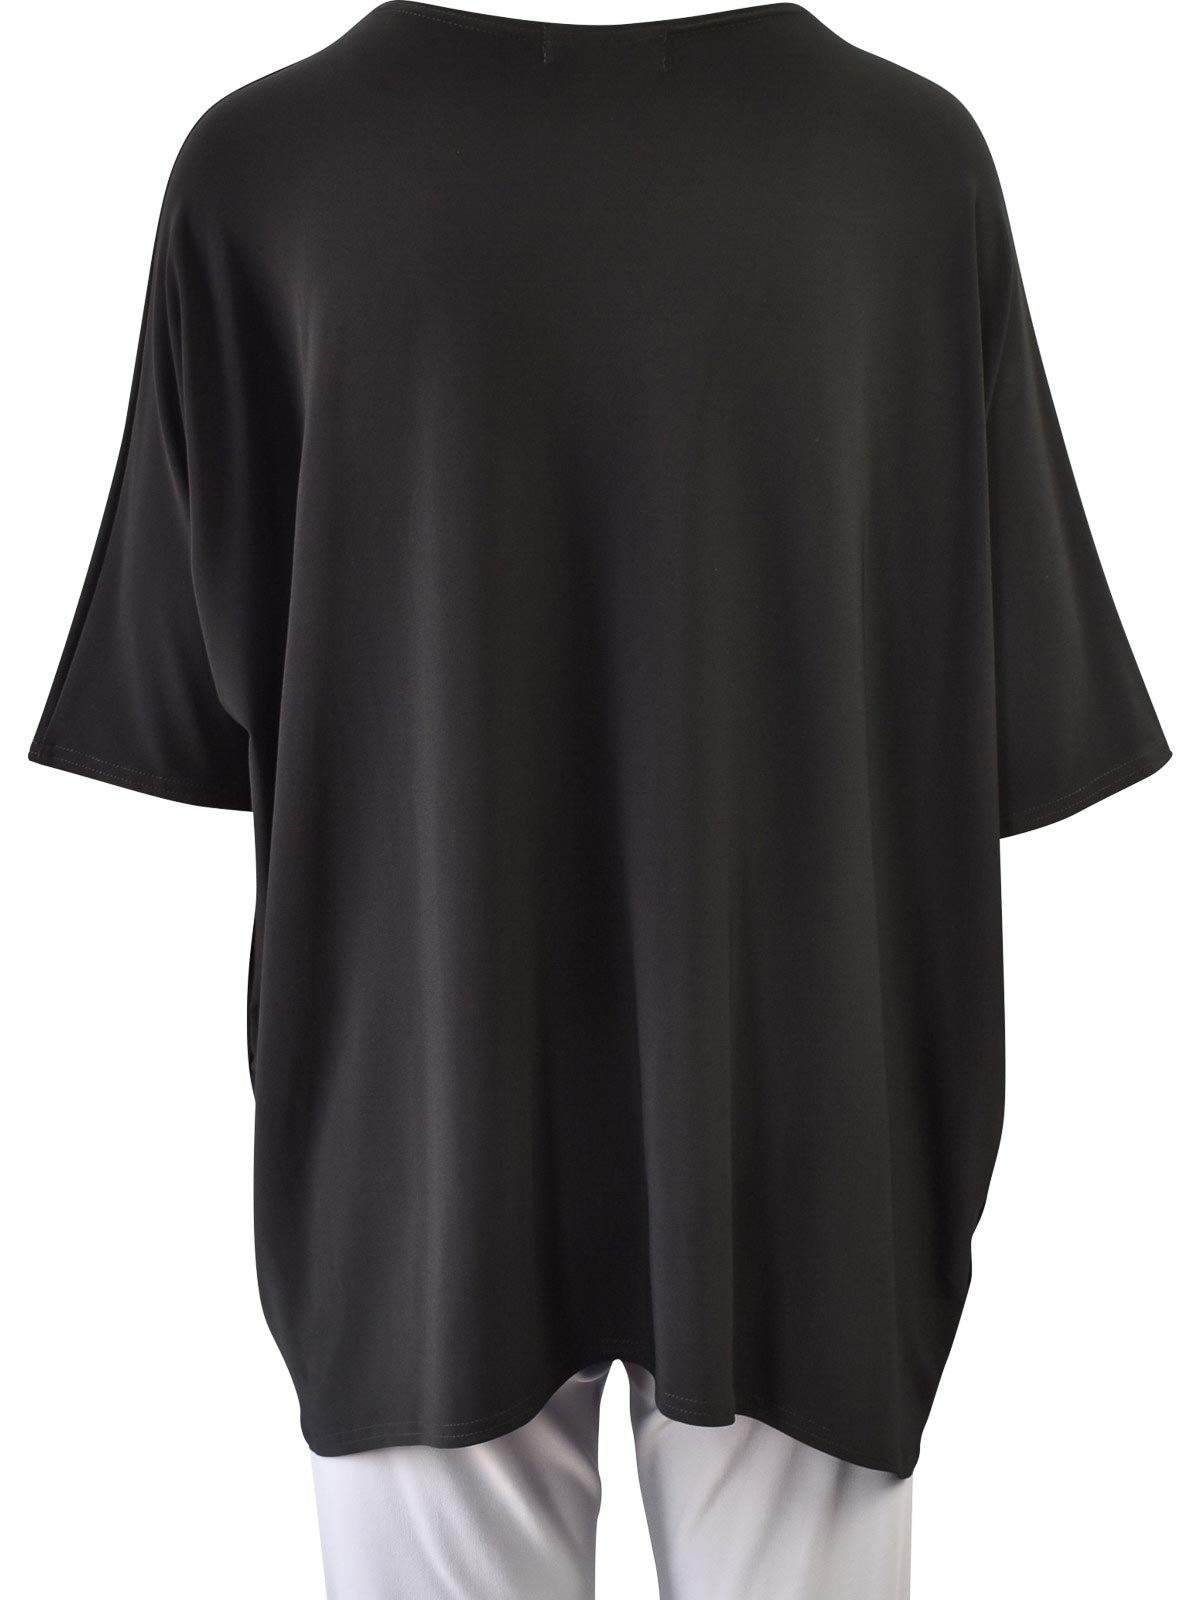 Sympli Lounge Top, Black - Statement Boutique